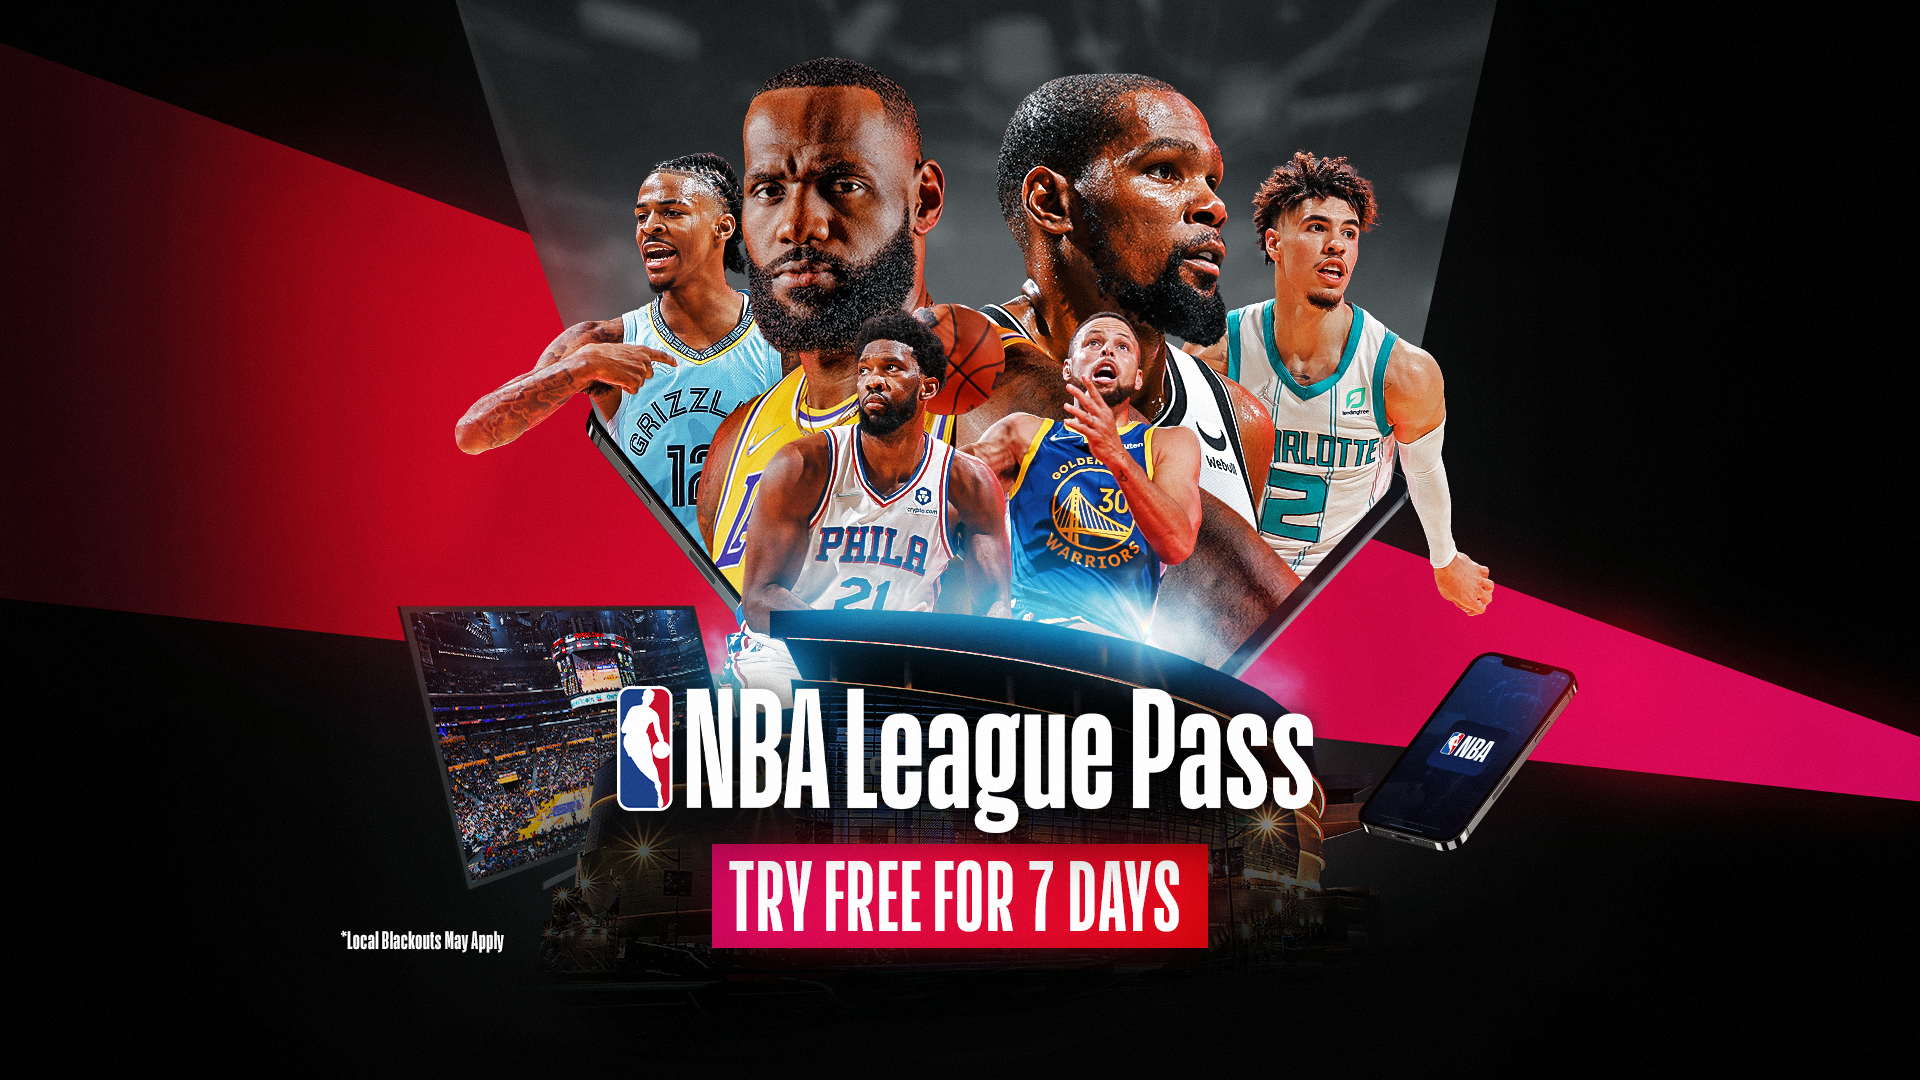 Try NBA League Pass free for 7 days